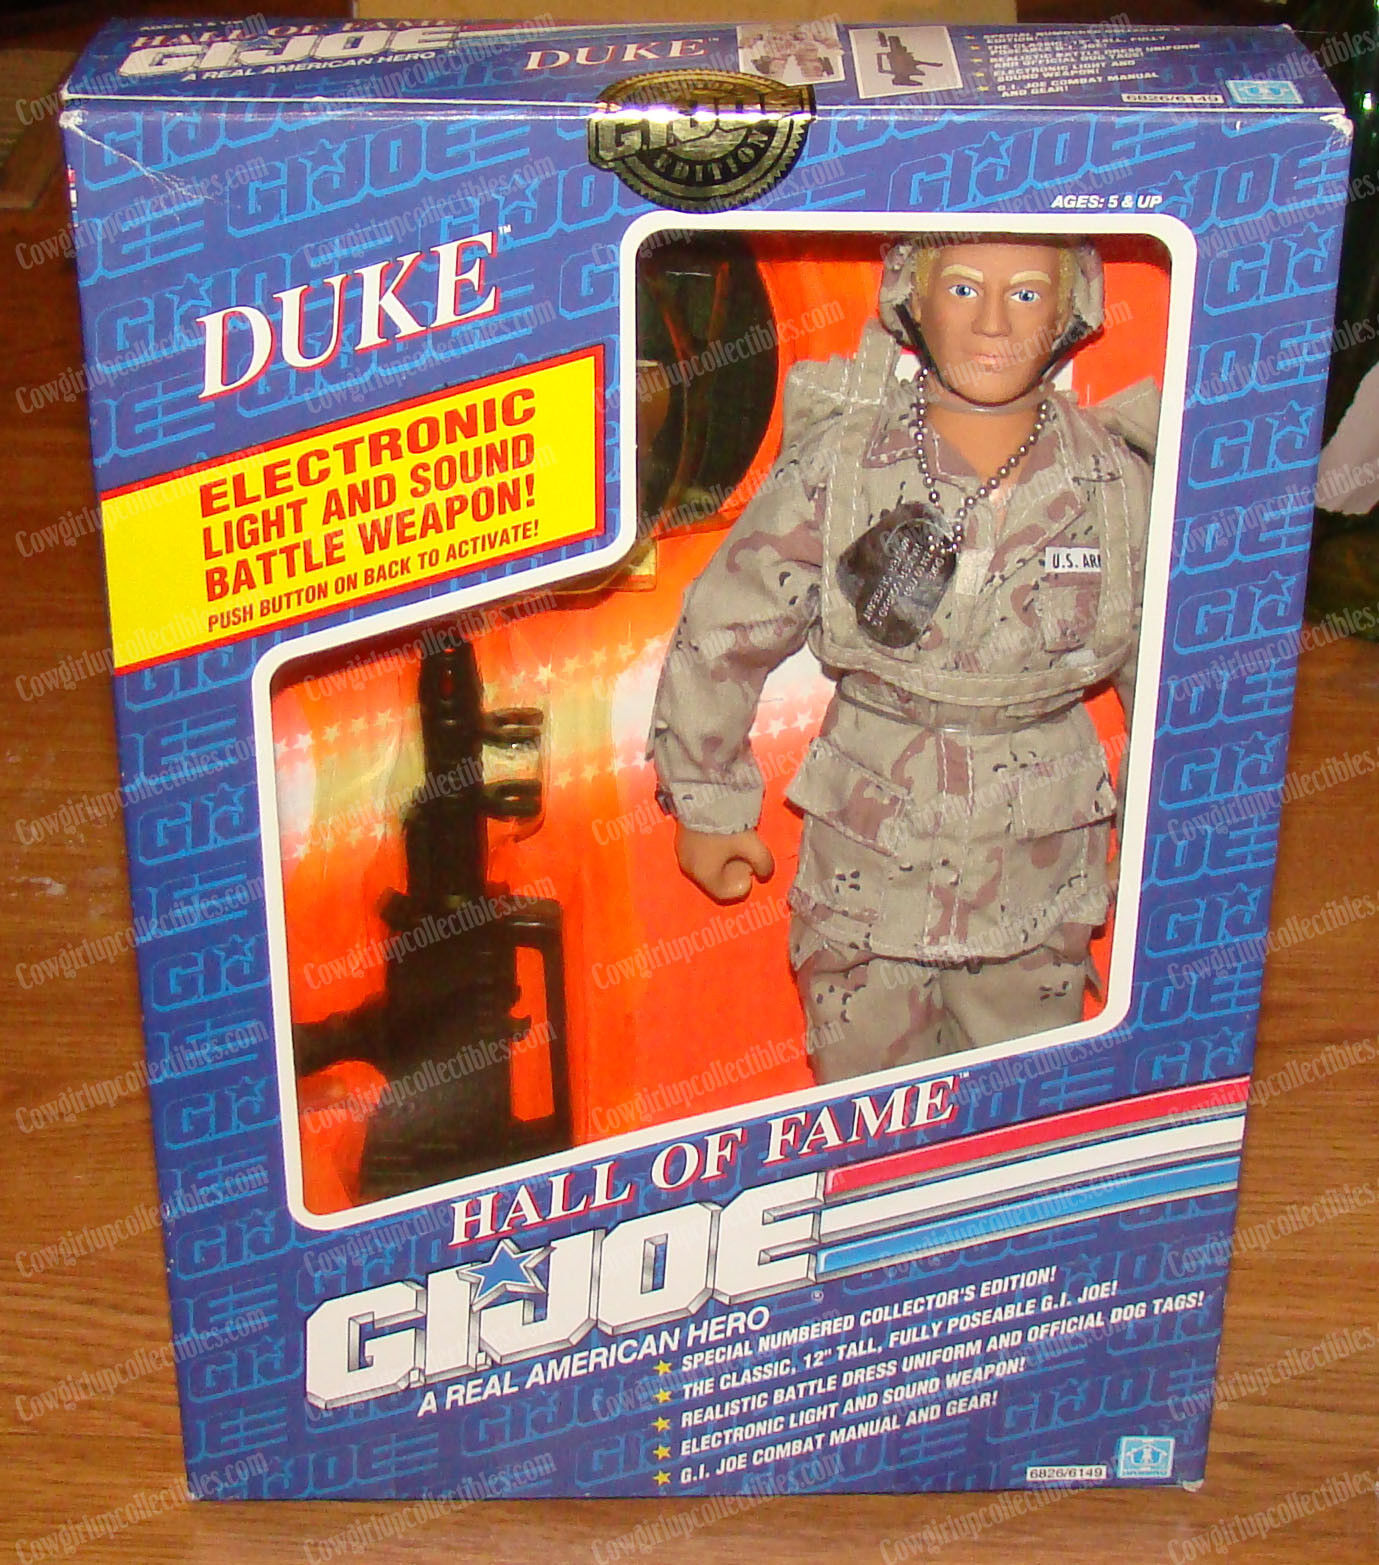 Duke (Hall of Fame G.I. Joe by Hasbro, 6826 6149) 1991, Light & Sound